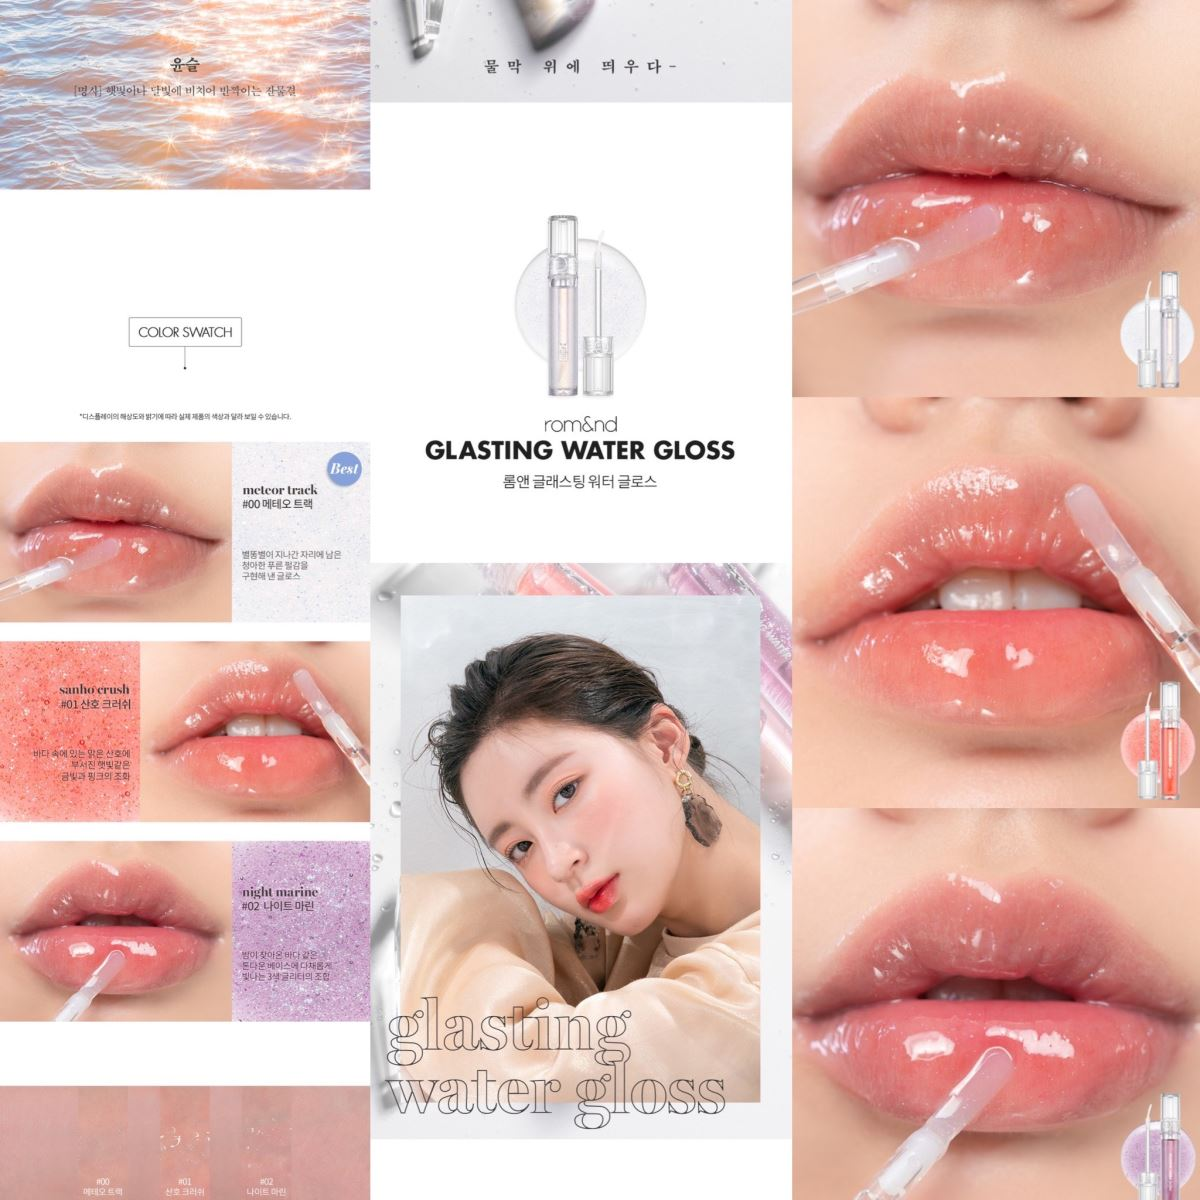 Son Bóng Romand Glasting Water Gloss